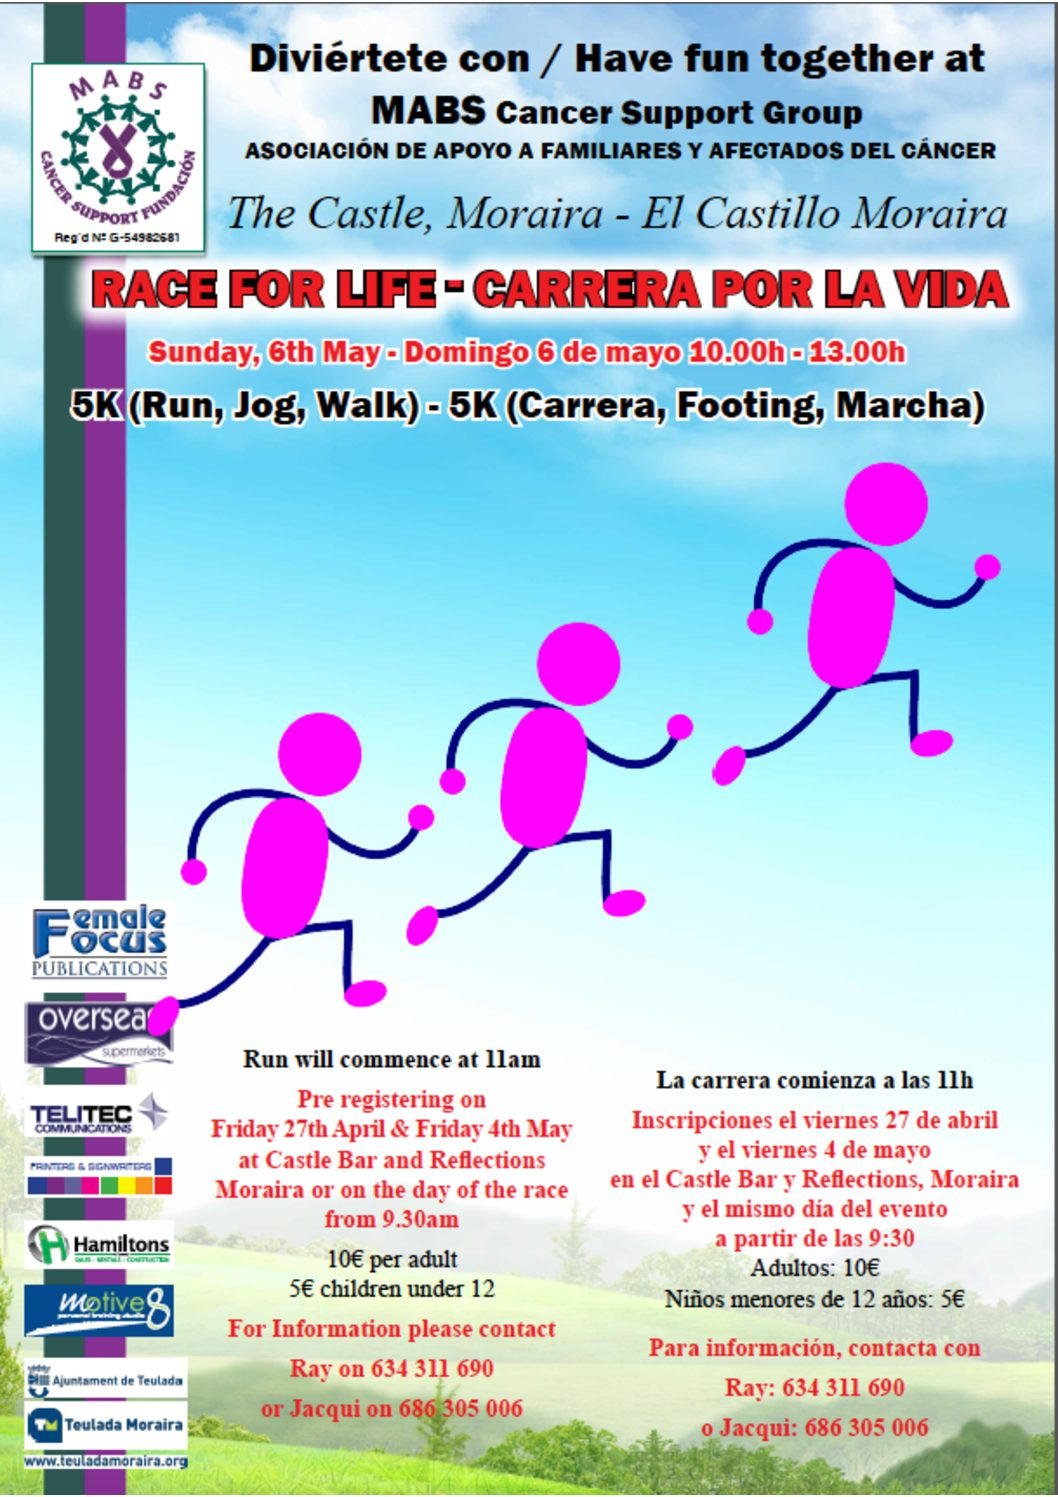 MABS 7A_Race for life_Carrera por la vida